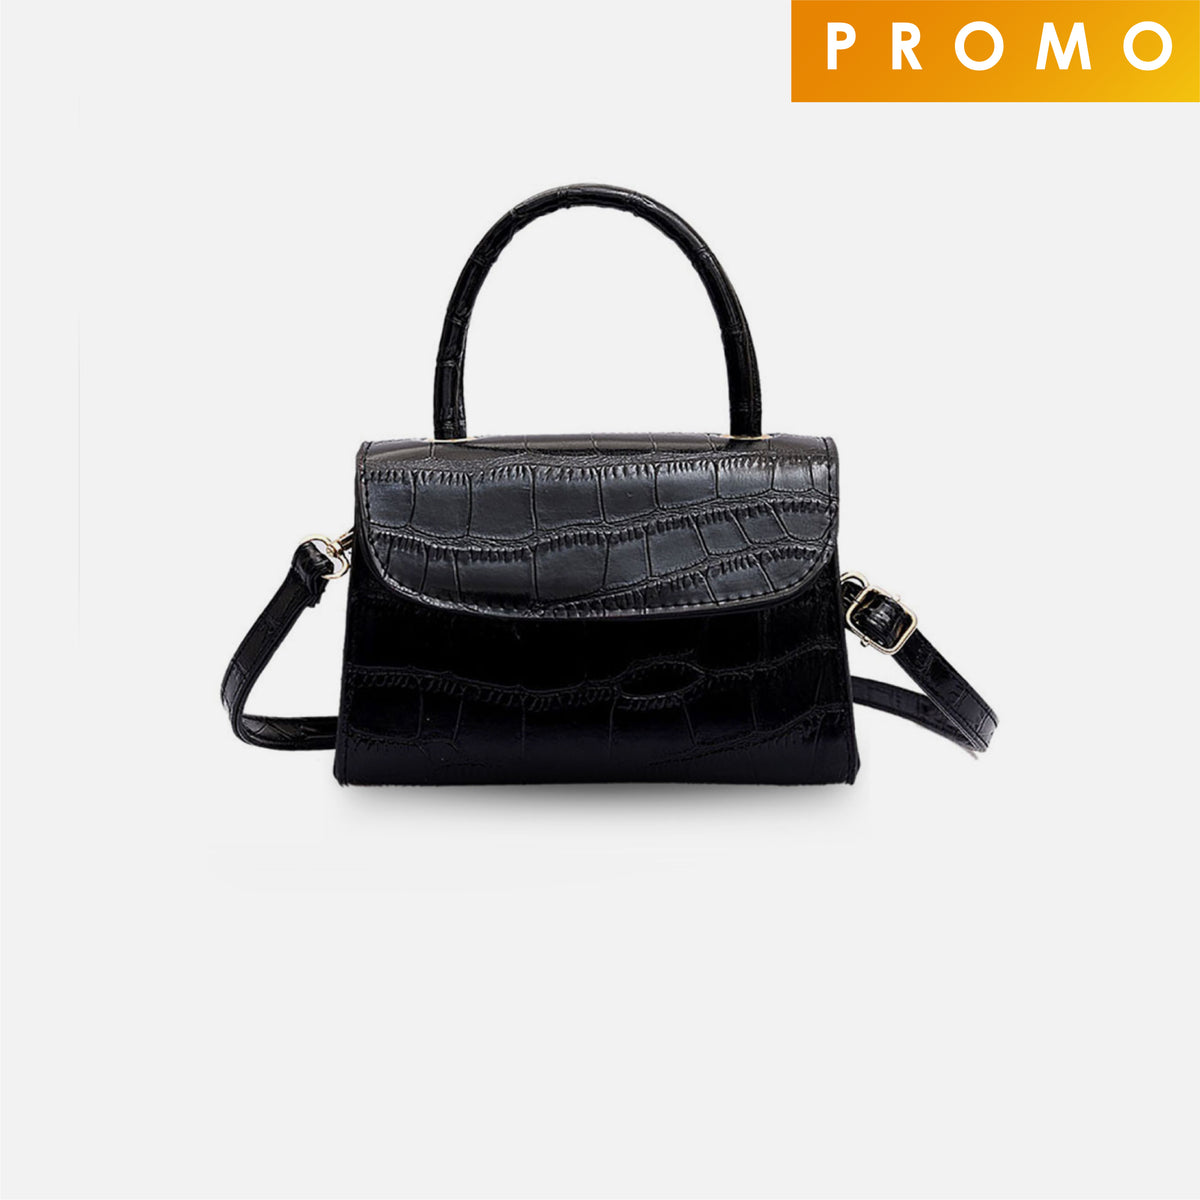 Aria Satchel Bag - Black